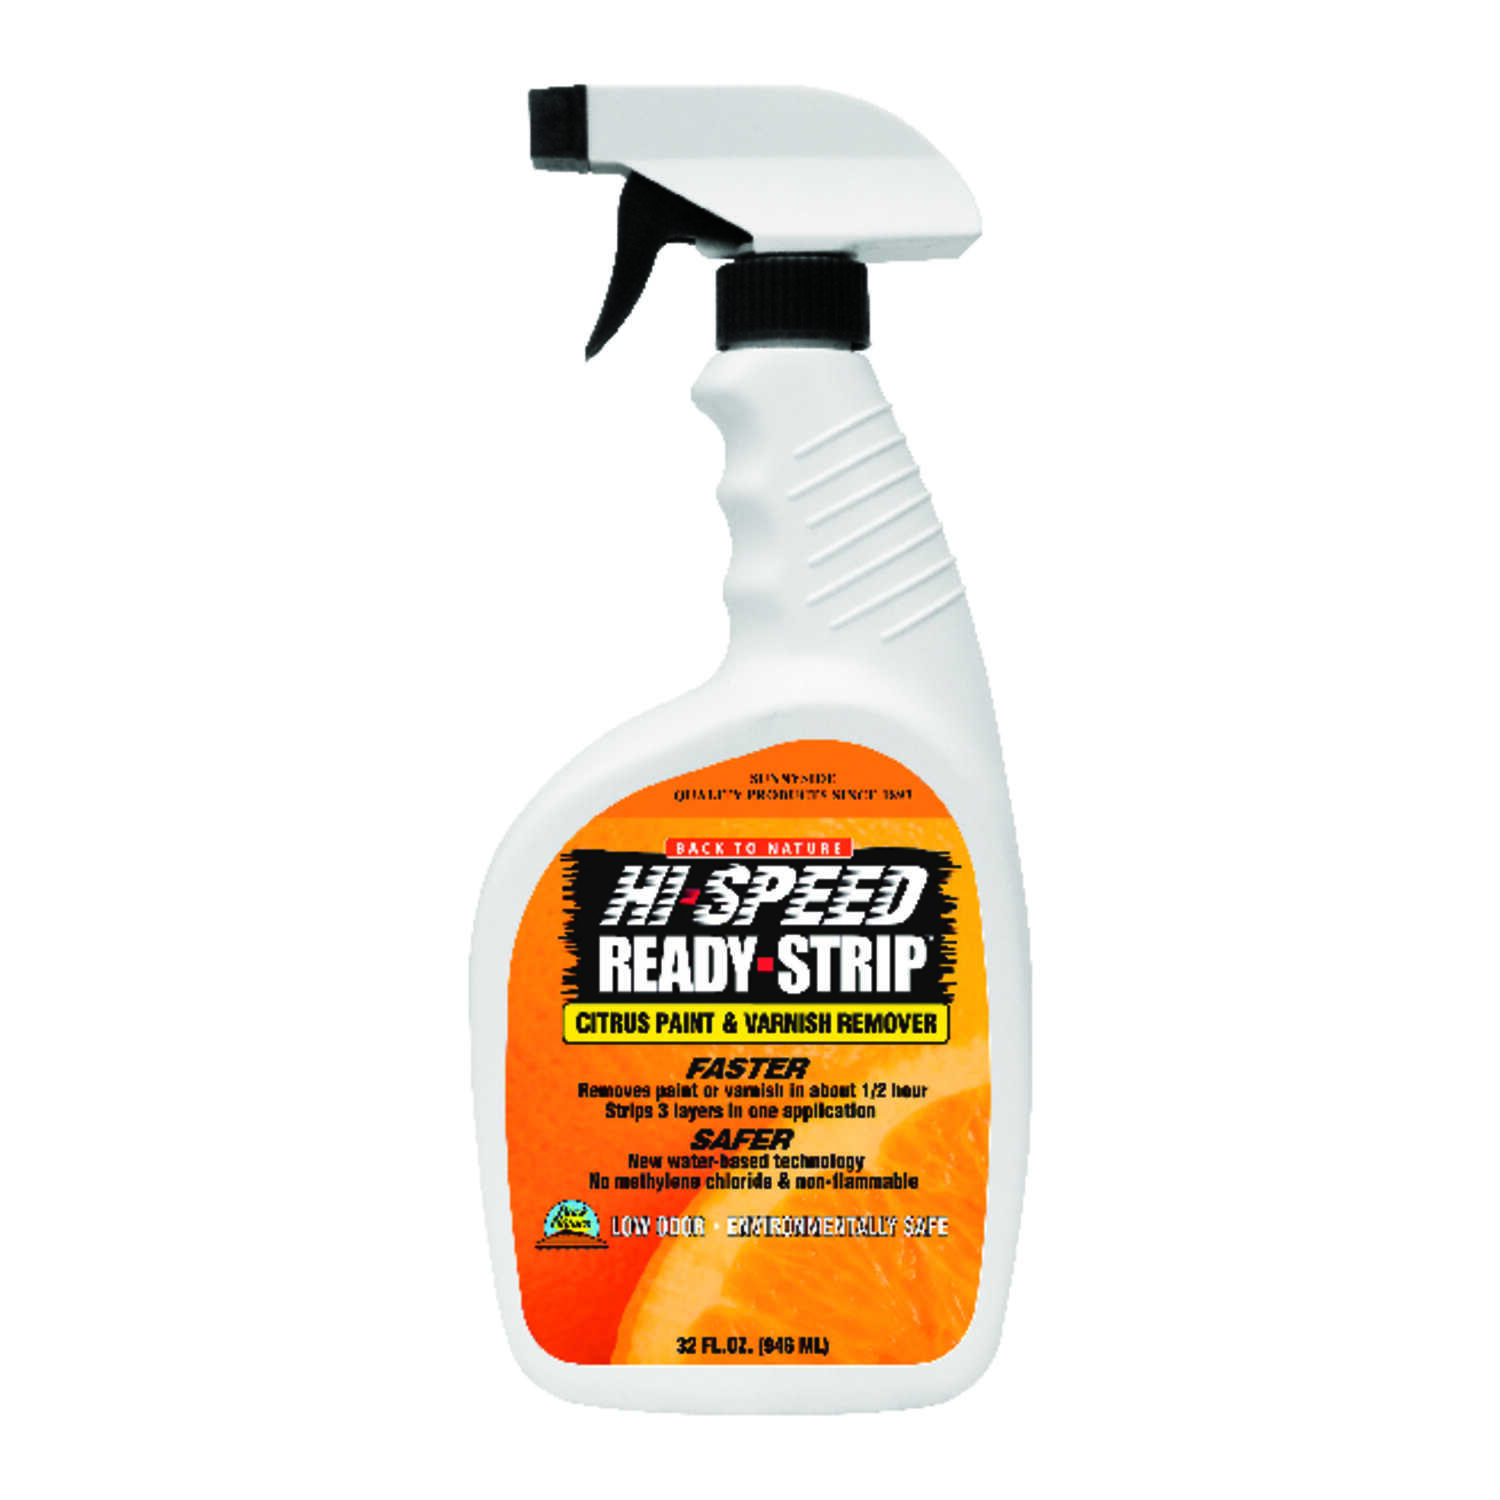 Back to Nature  Hi-Speed Ready-Strip  Paint Remover  1 oz.